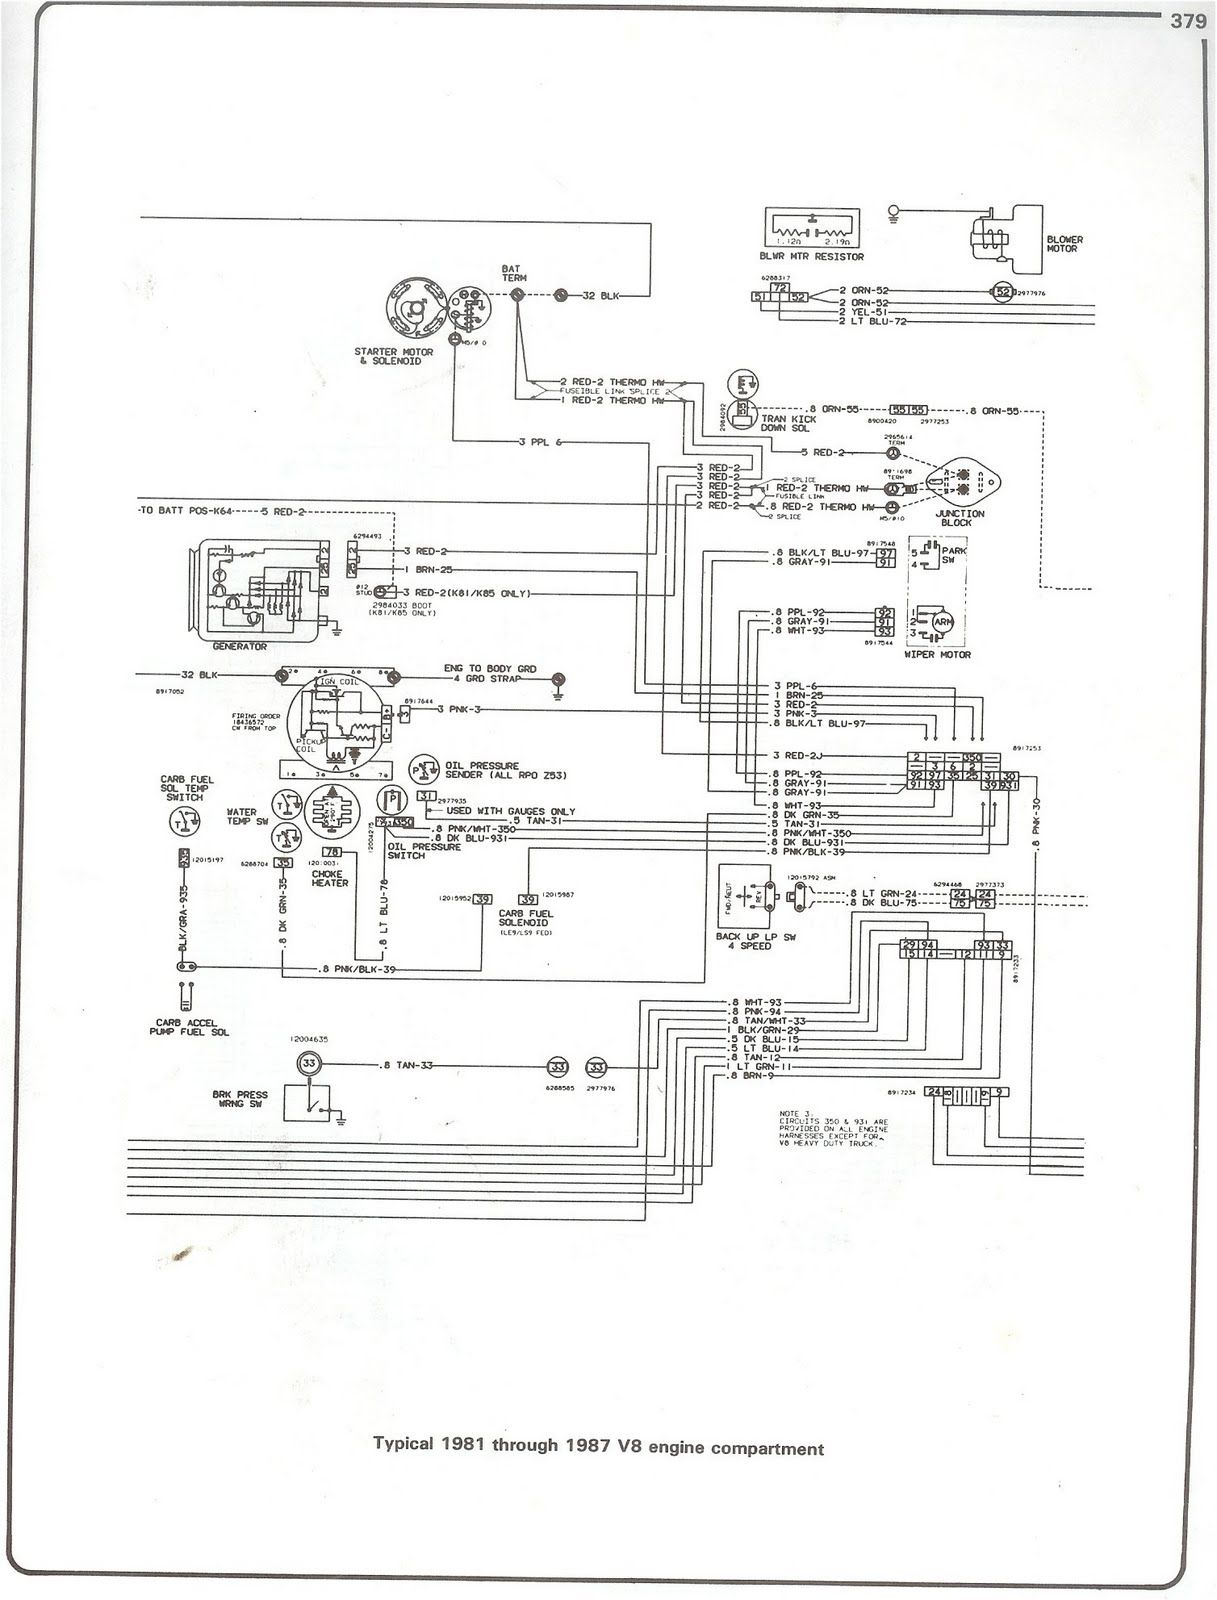 This is engine compartment wiring diagram for 1981 trough ... Jeep Turn Signal Wiring Diagram on ford 8n wiring diagram, 1960 willys l6-226 12 volt wiring diagram, 1979 jeep wiring diagram, jeep cj5 wiring-diagram, 1986 jeep wiring diagram, simple chopper wiring diagram, 86 cj7 distributor wiring diagram, 2014 jeep wrangler wiring diagram, 1984 jeep cj wiring diagram, 2009 dodge 4500 pto wiring diagram,